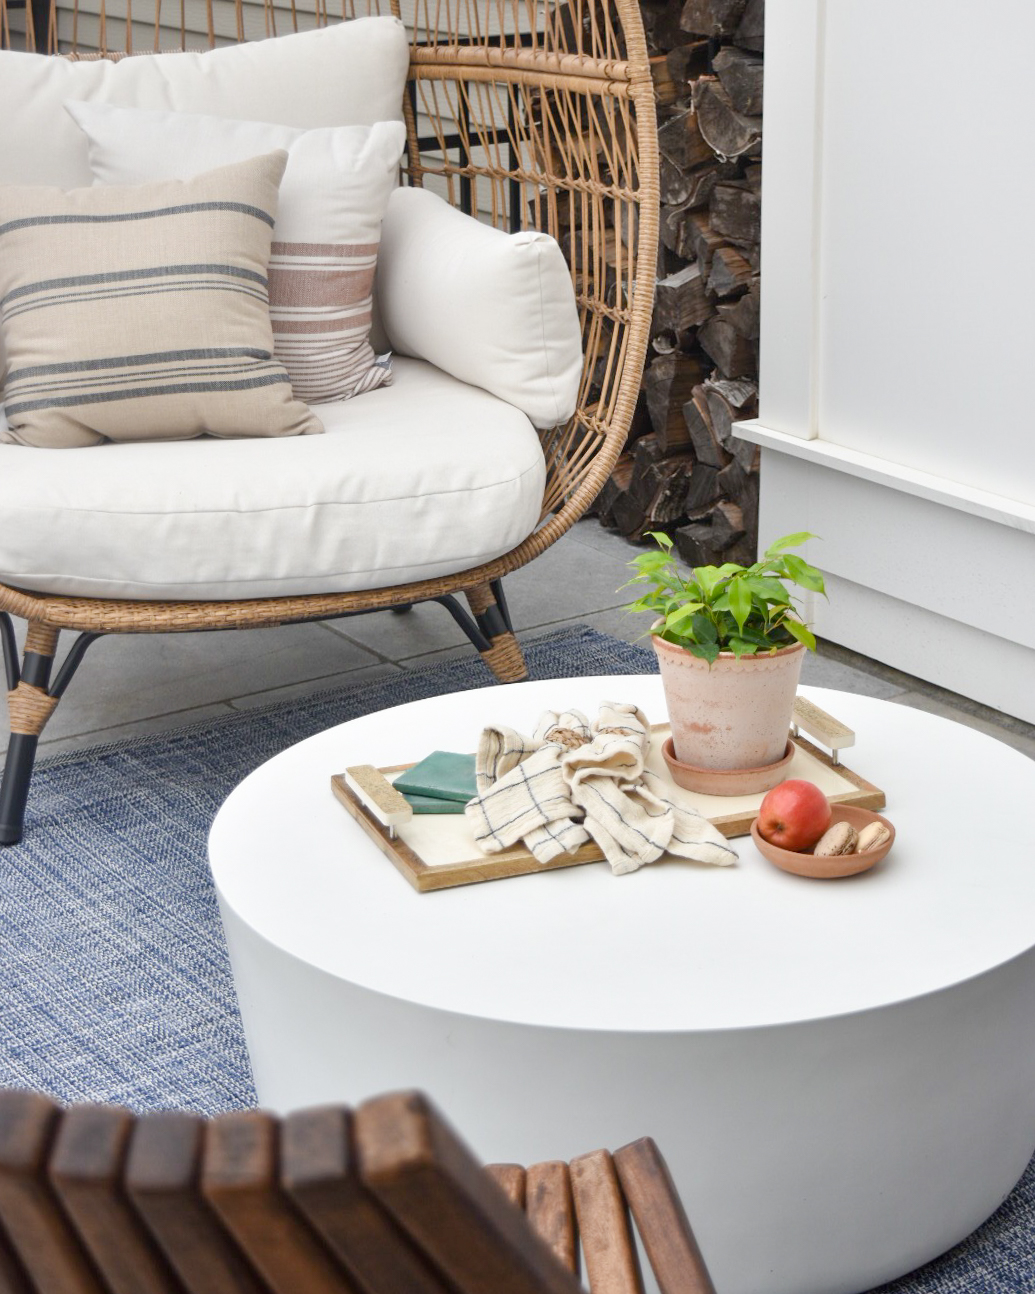 How to care for stone outdoor furniture